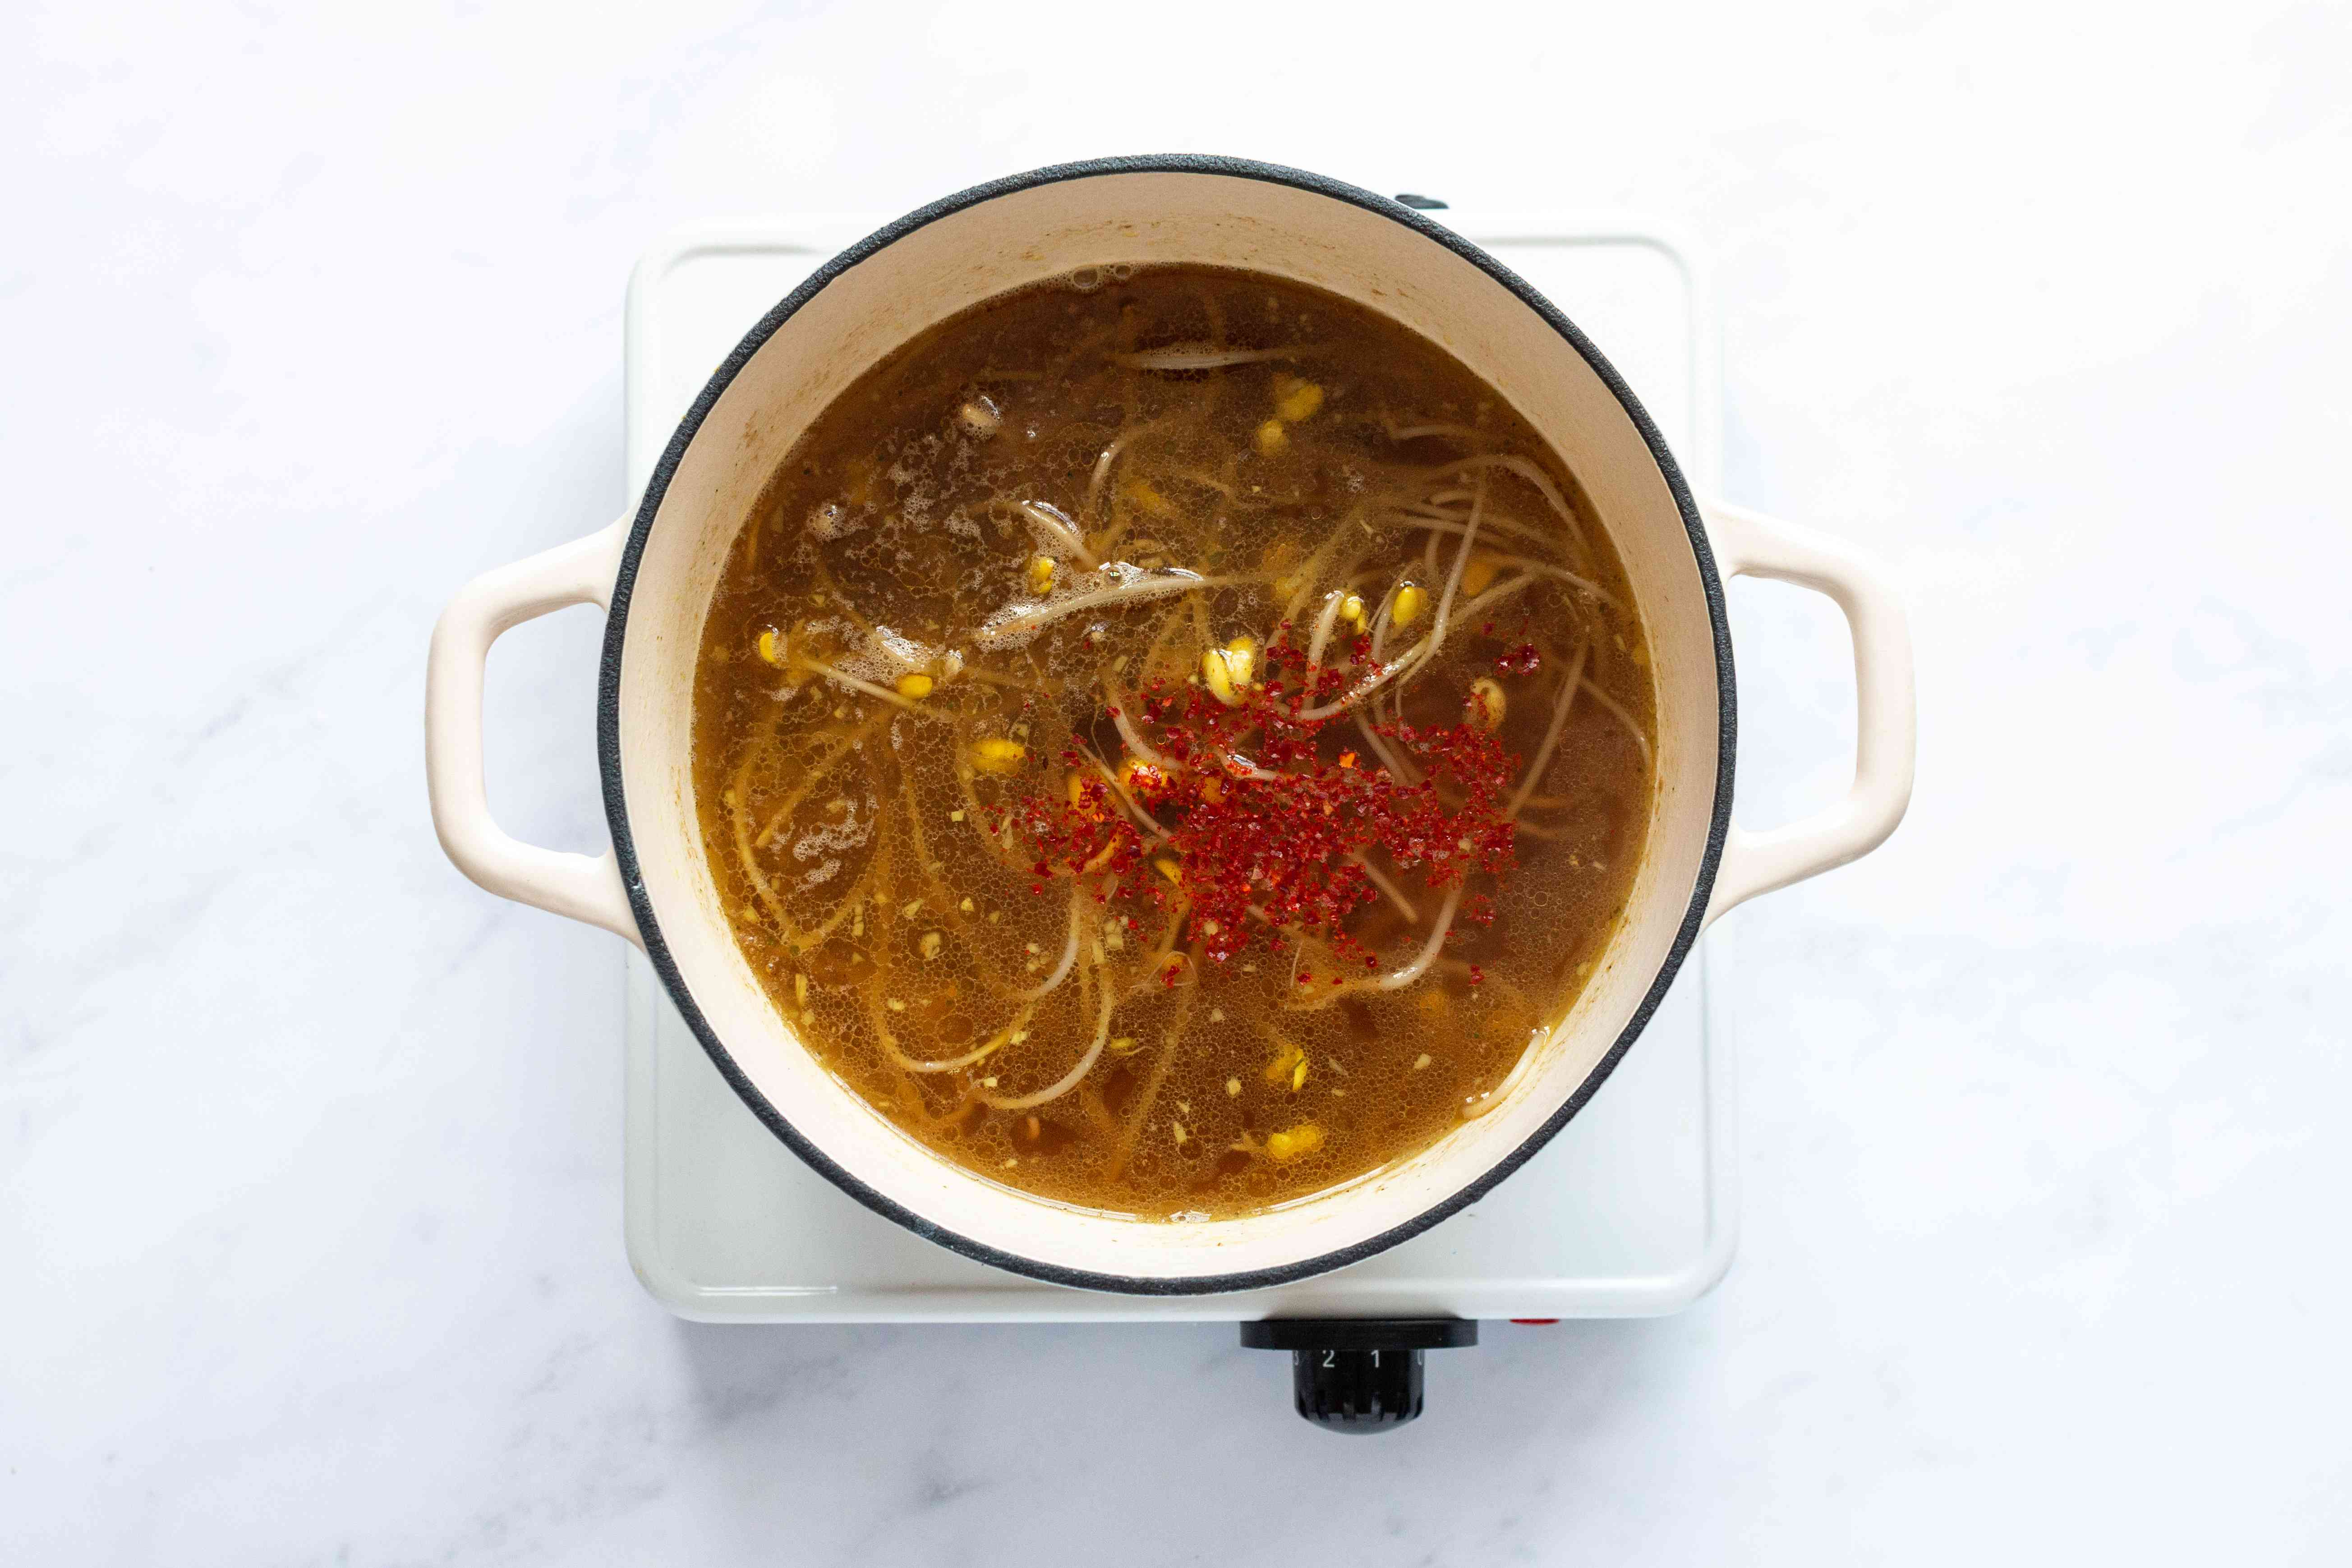 soup and red peppers cooking in a pot